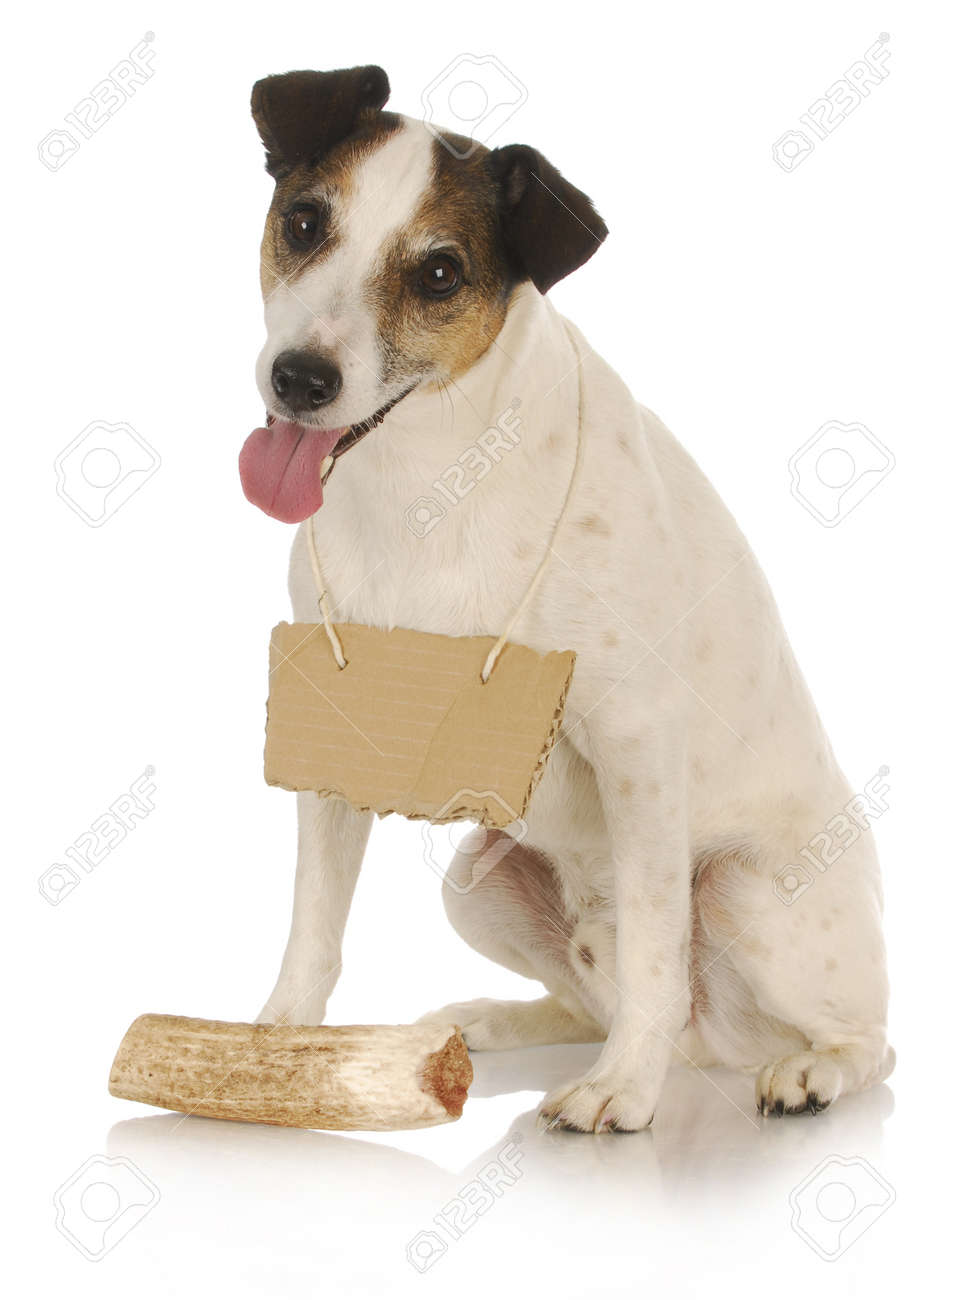 dog with bone - jack russel terrier wearing blank sign around neck sitting in front of dog bone Stock Photo - 11104329